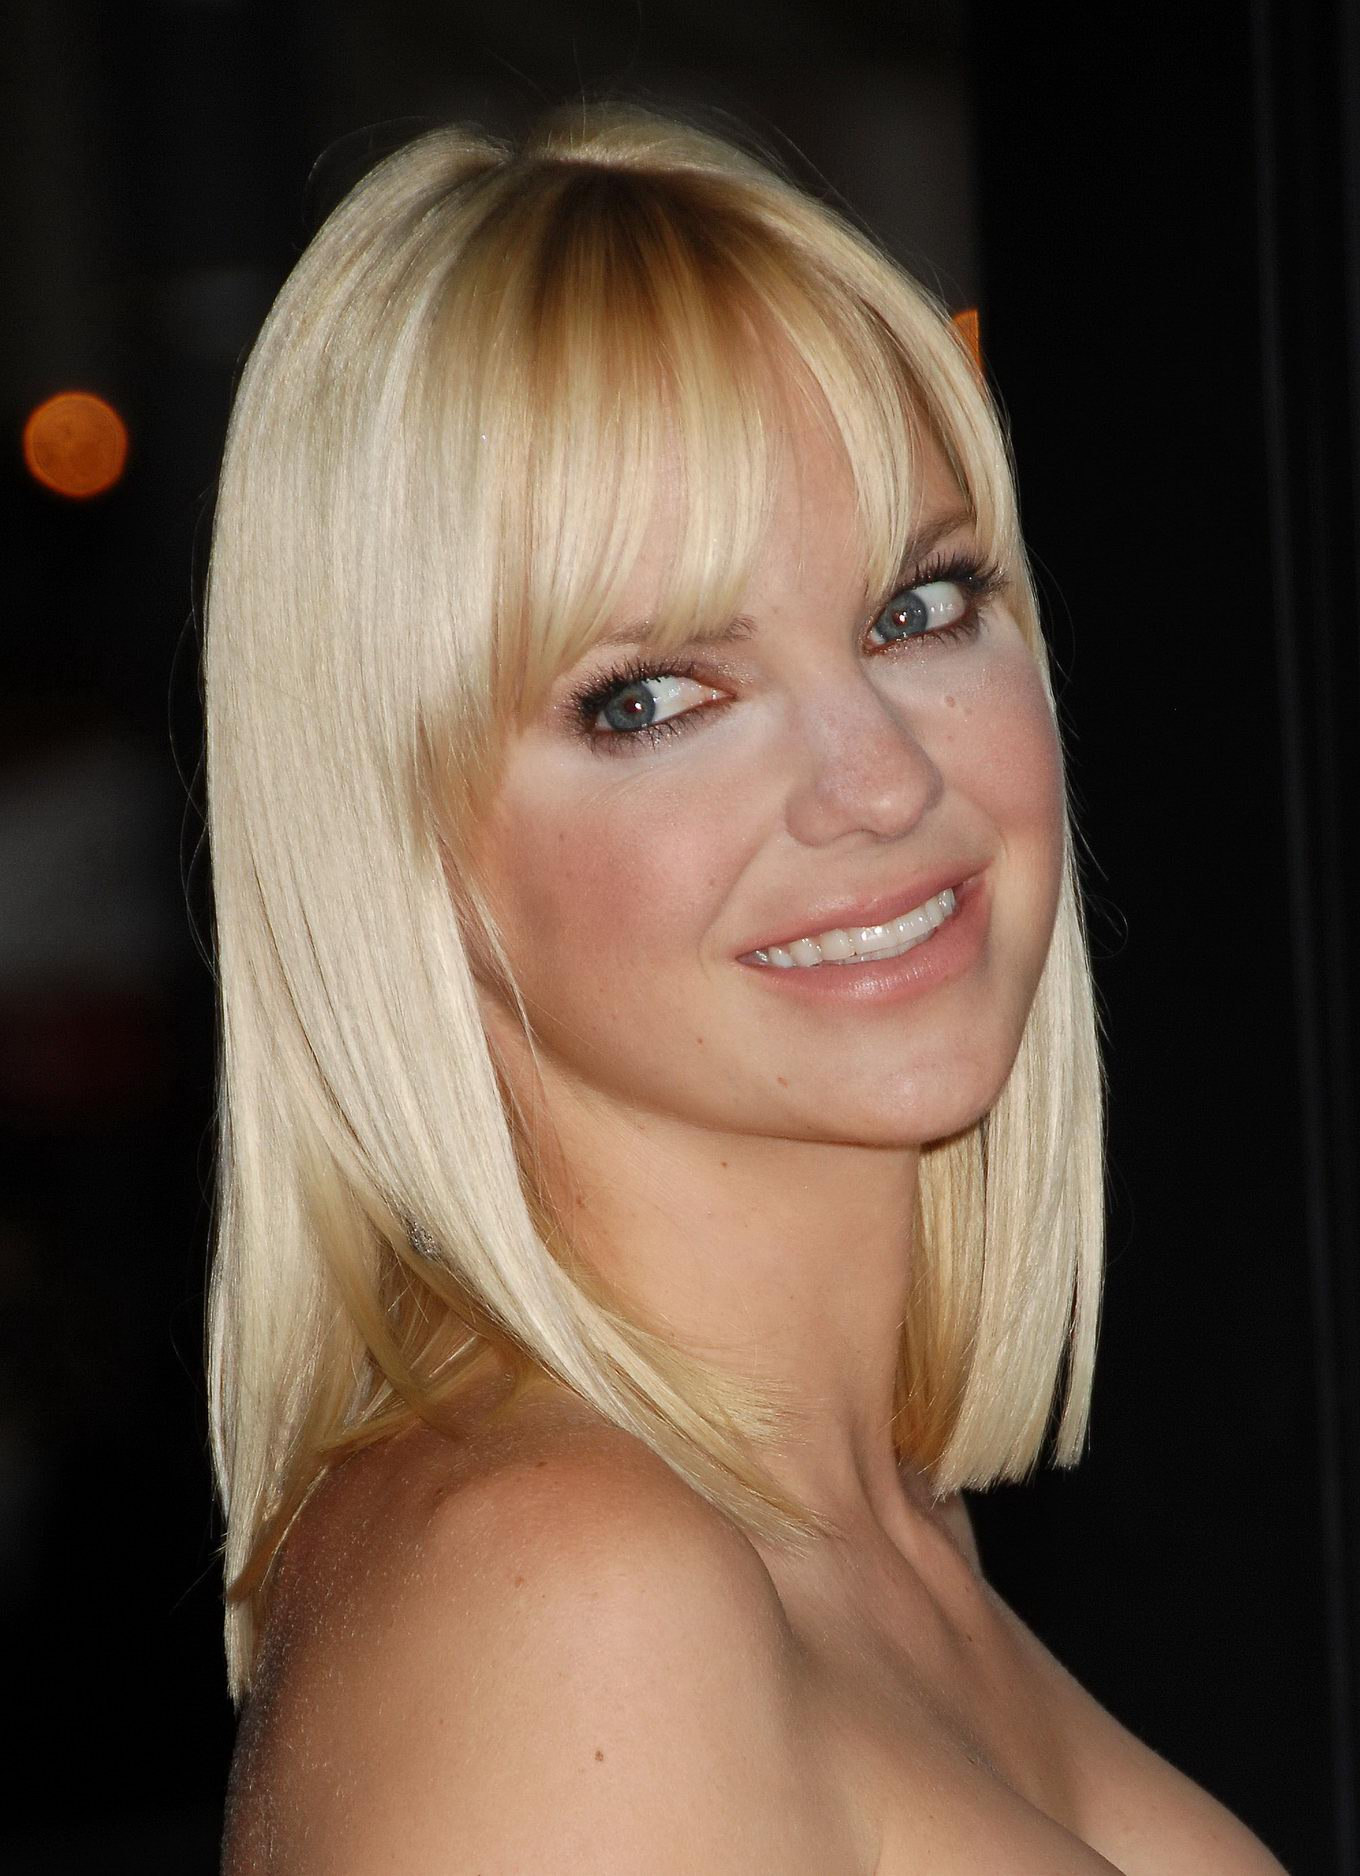 Anna Faris Busty Wearing Strapless White Dress At Whats -4838